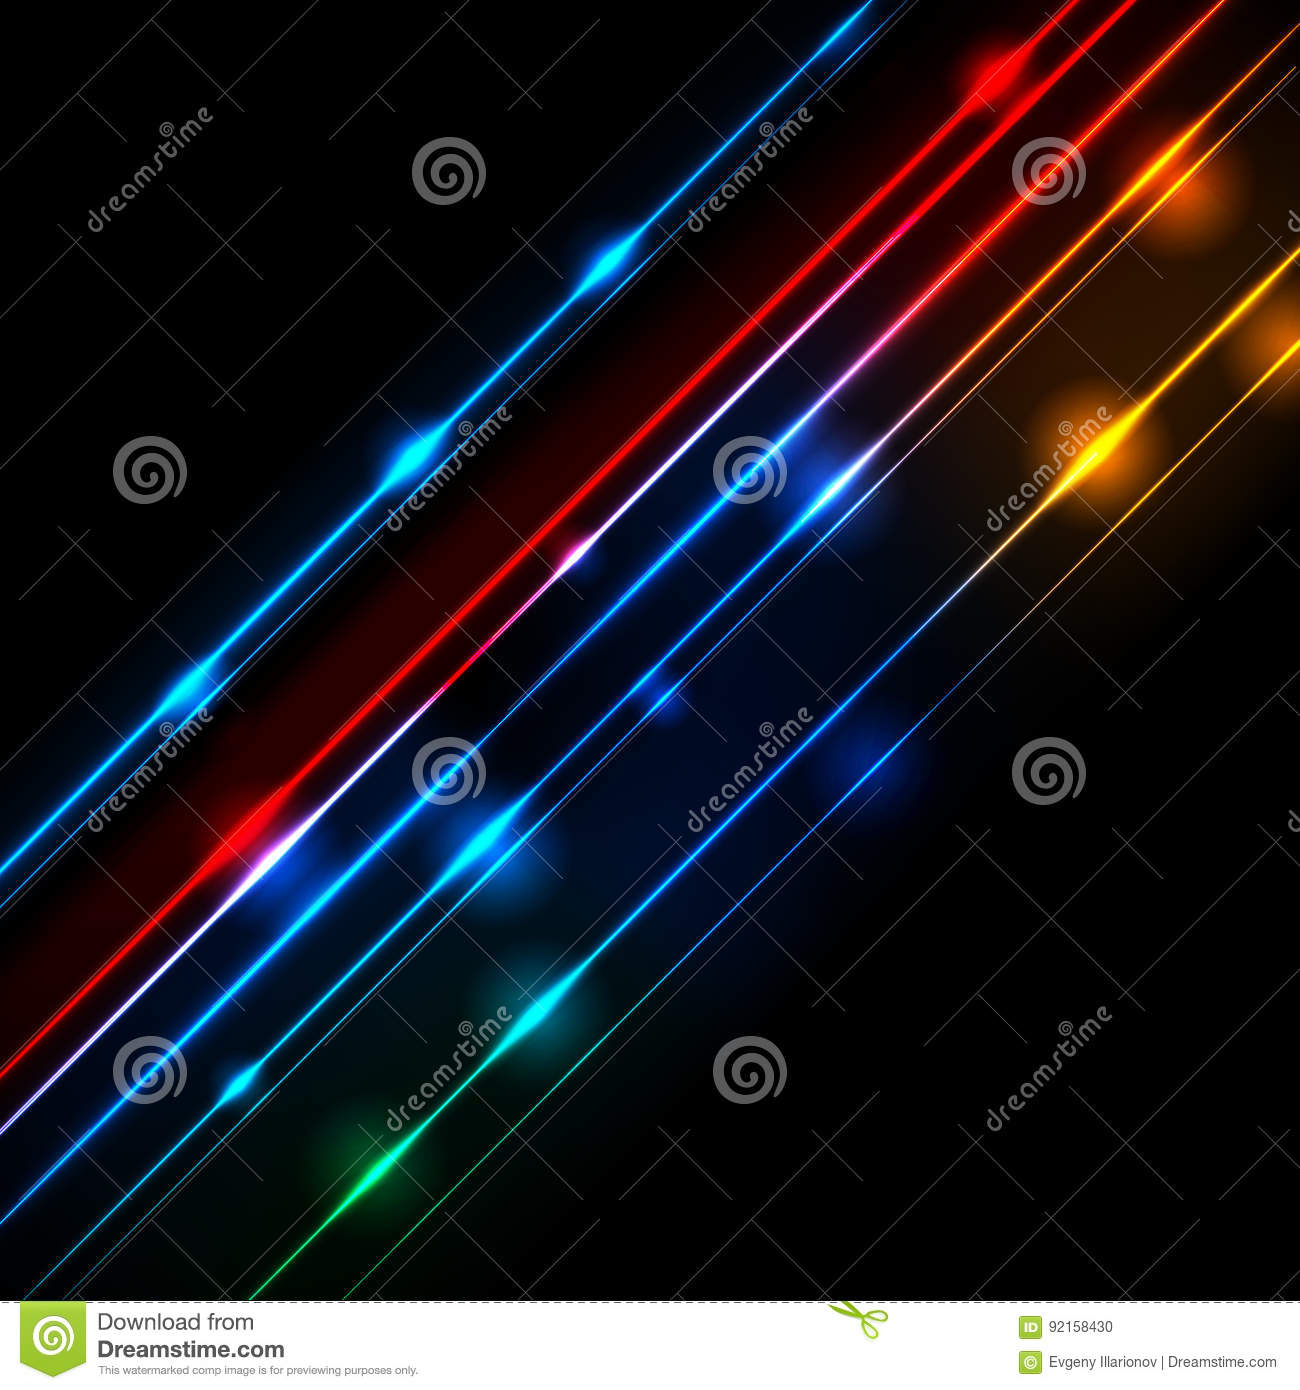 Neon glowing lines abstract vector background